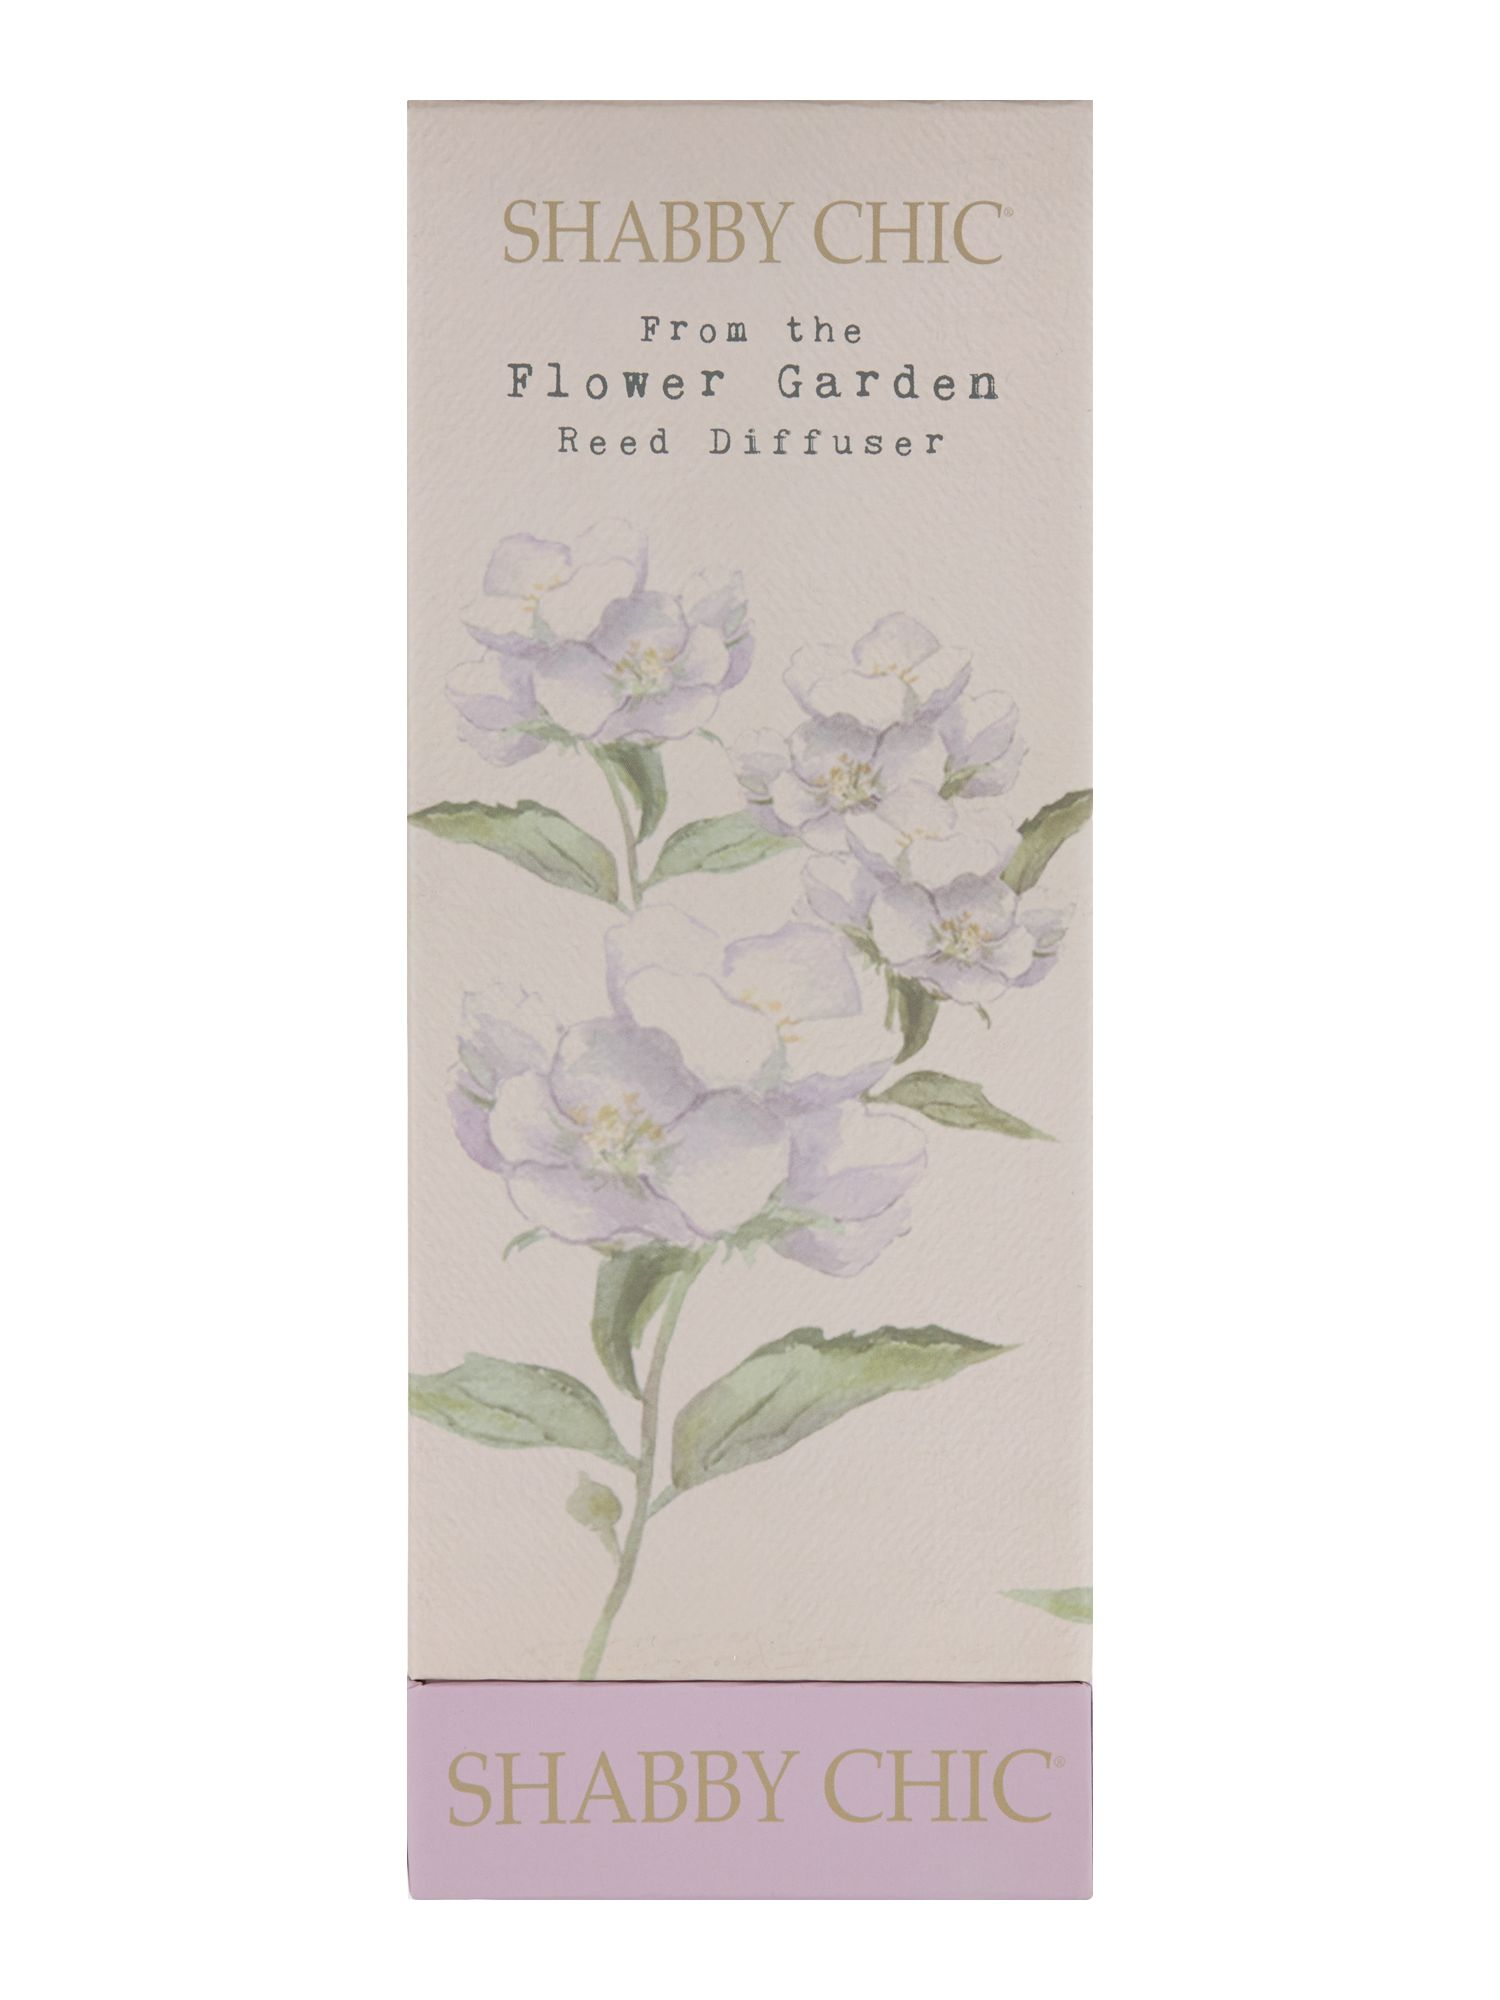 From the flower garden diffuser